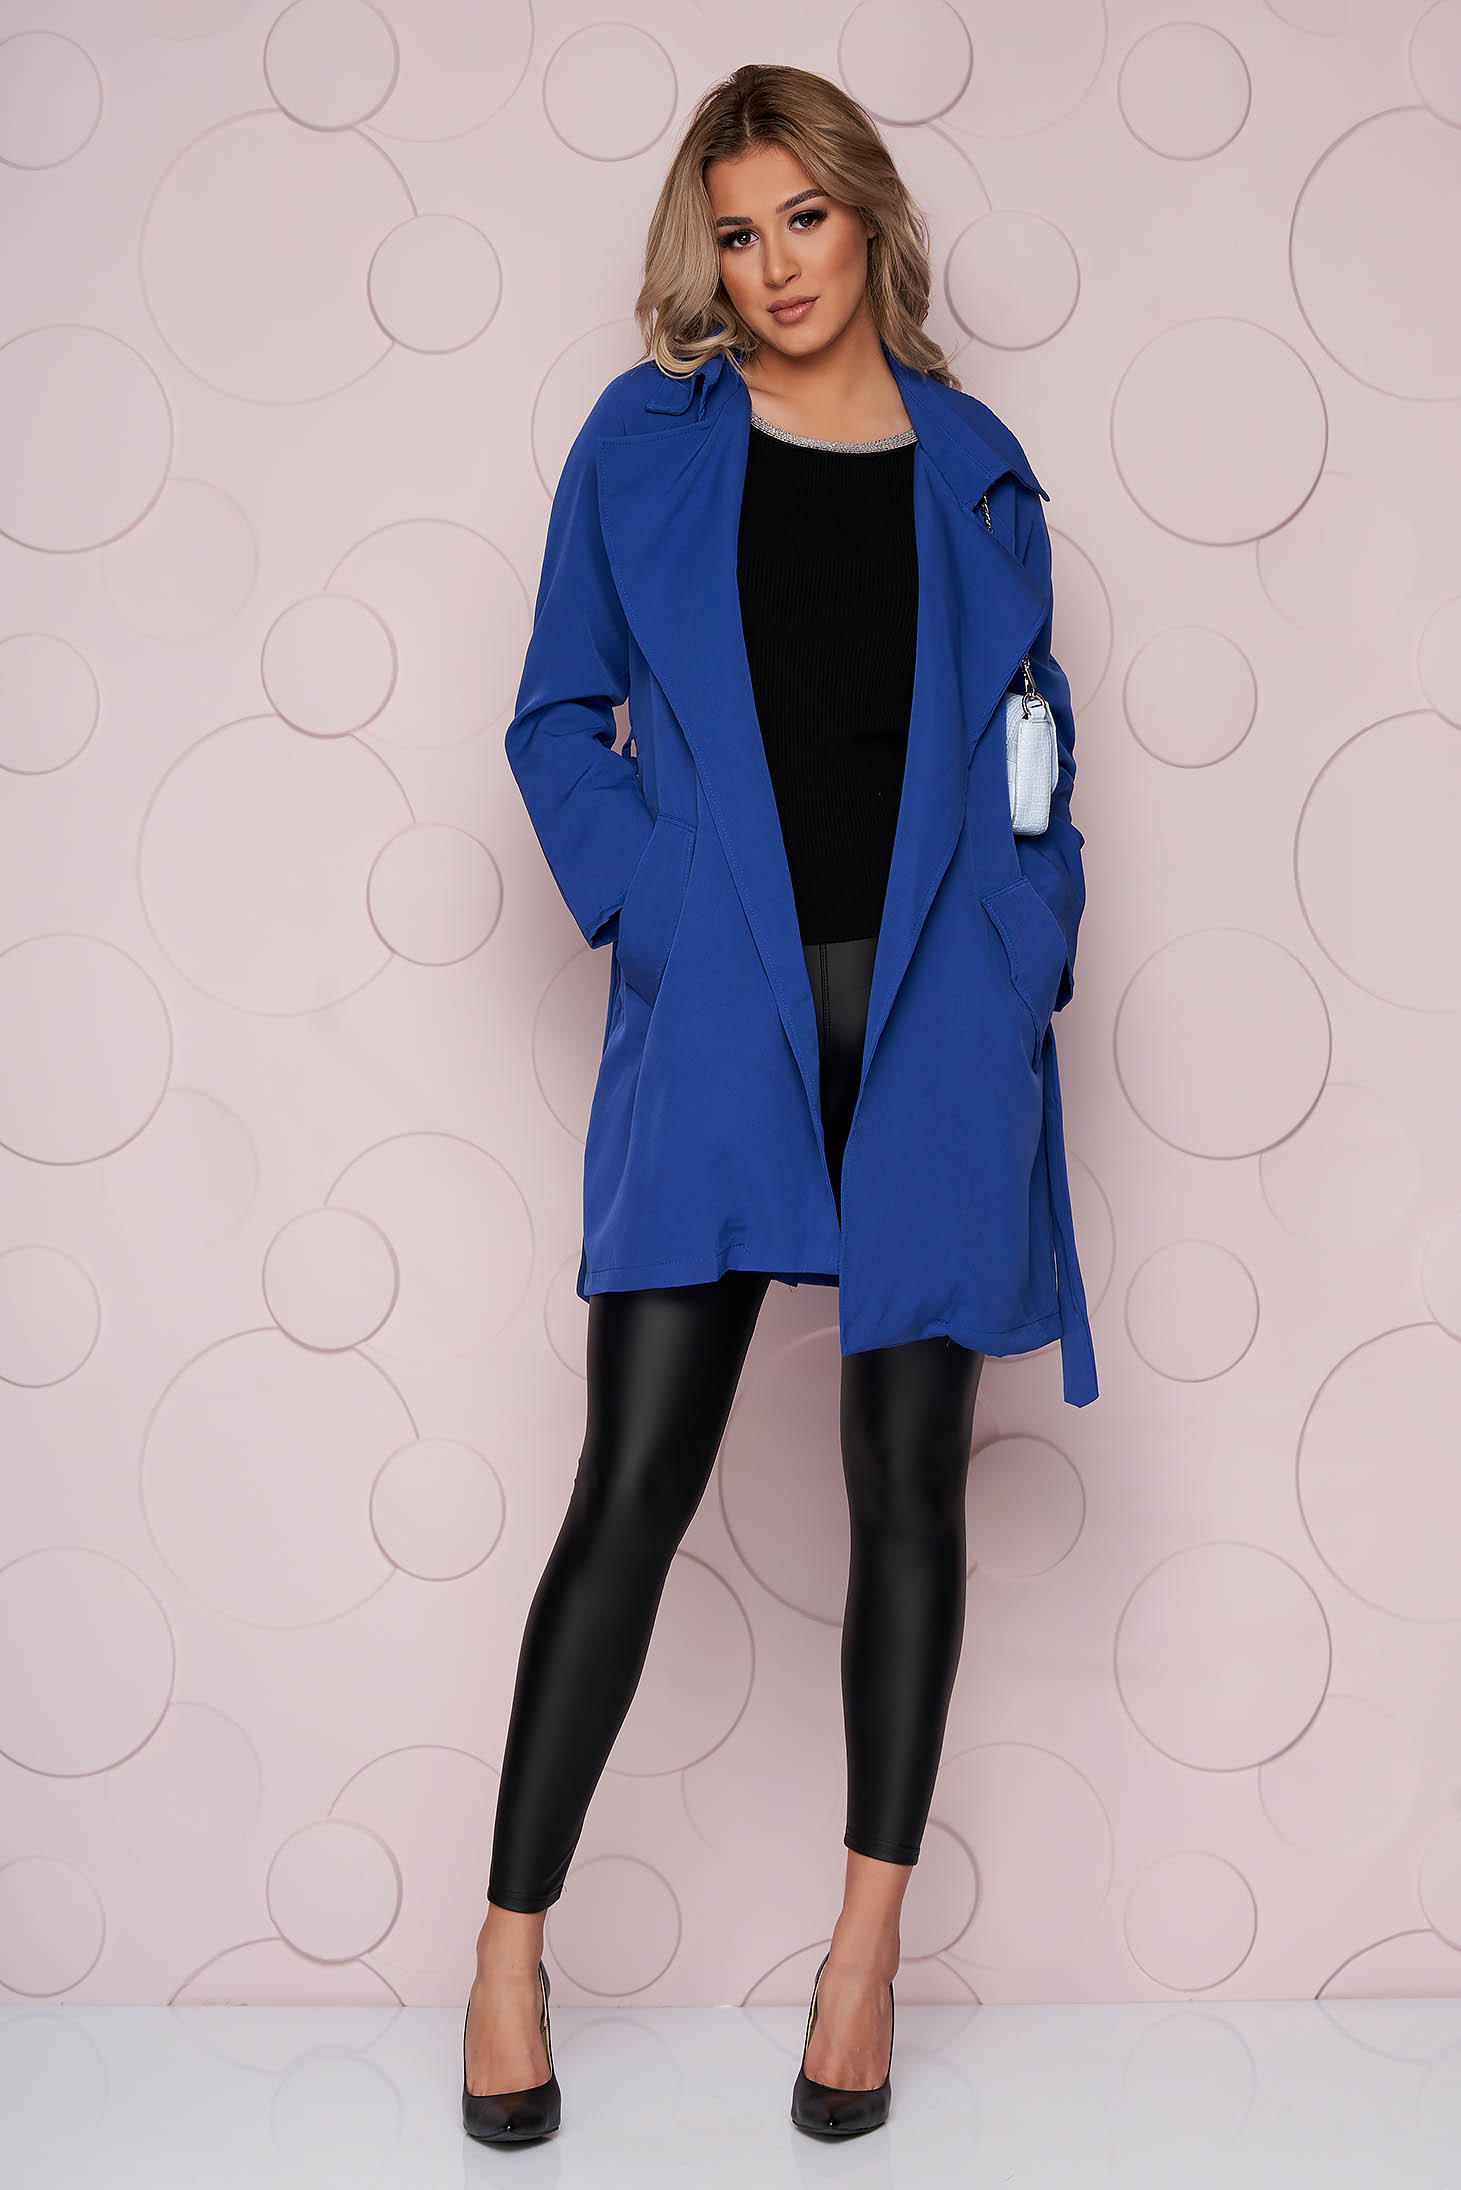 Blue trenchcoat straight nonelastic fabric long detachable cord light material